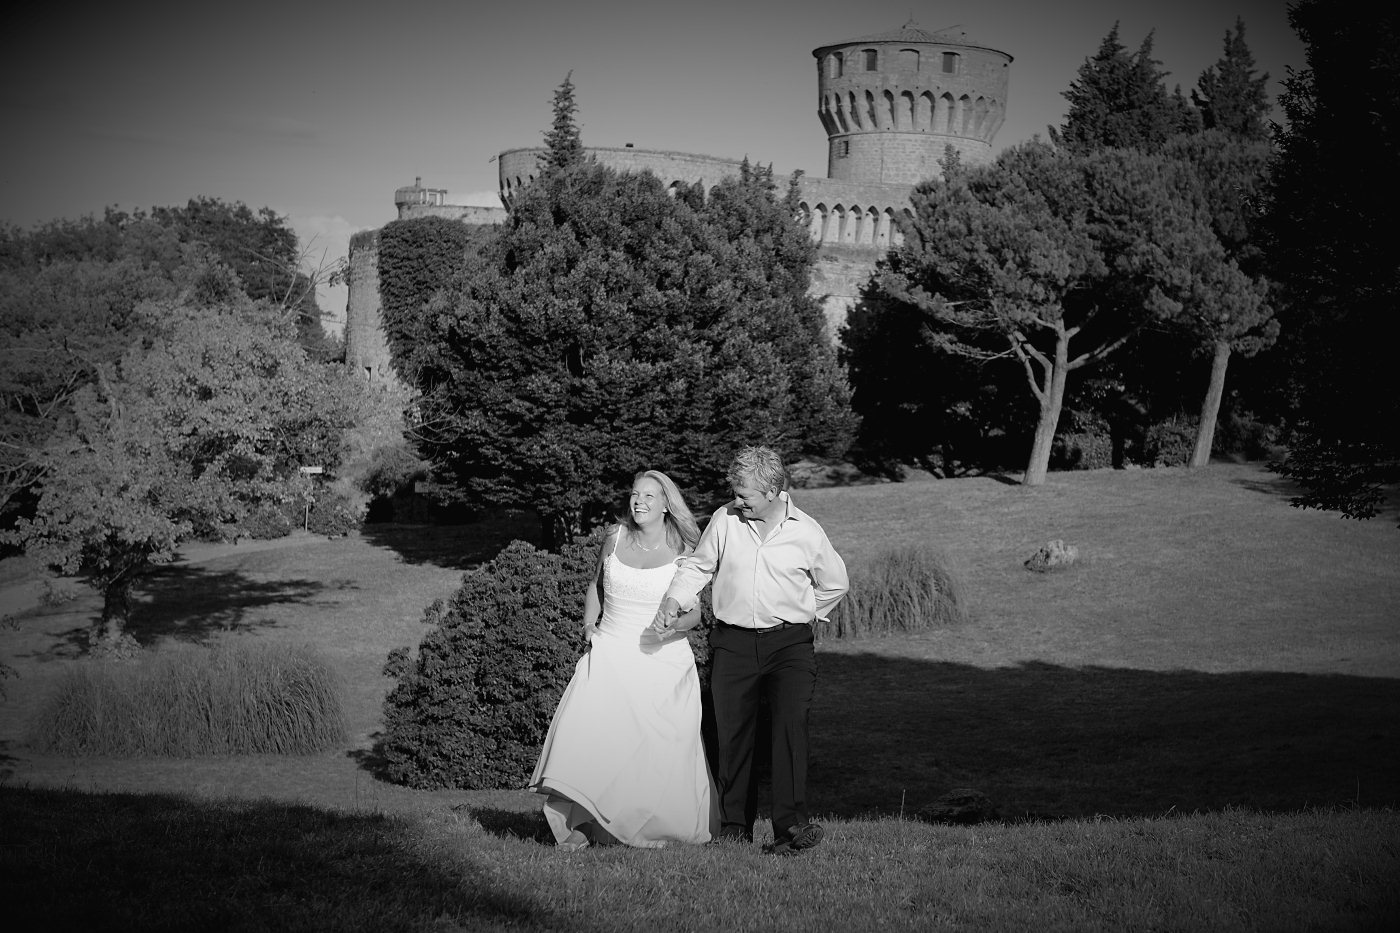 wedding photographer volterra_18.jpg